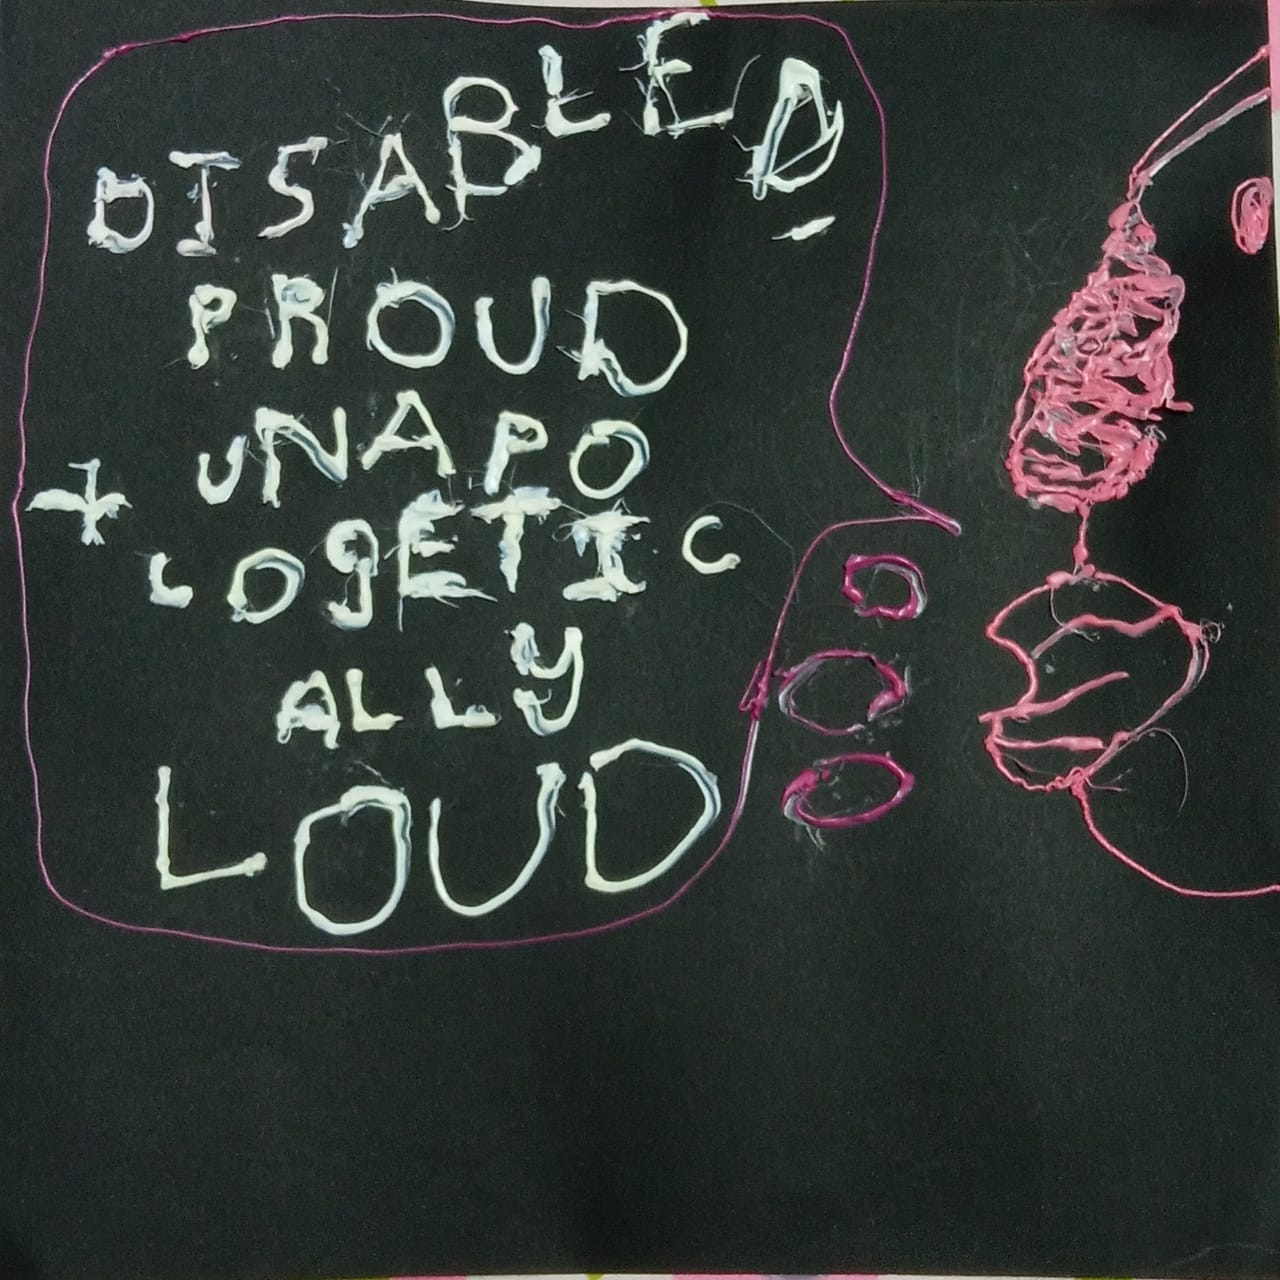 "the side view of a human face is drawn and embossed in pinkish peach on a black background. The lips are pouting and the mouth say's ""Disabled, proud and unapologetically loud"" in white capital letters. The entire picture seems to be embossed"